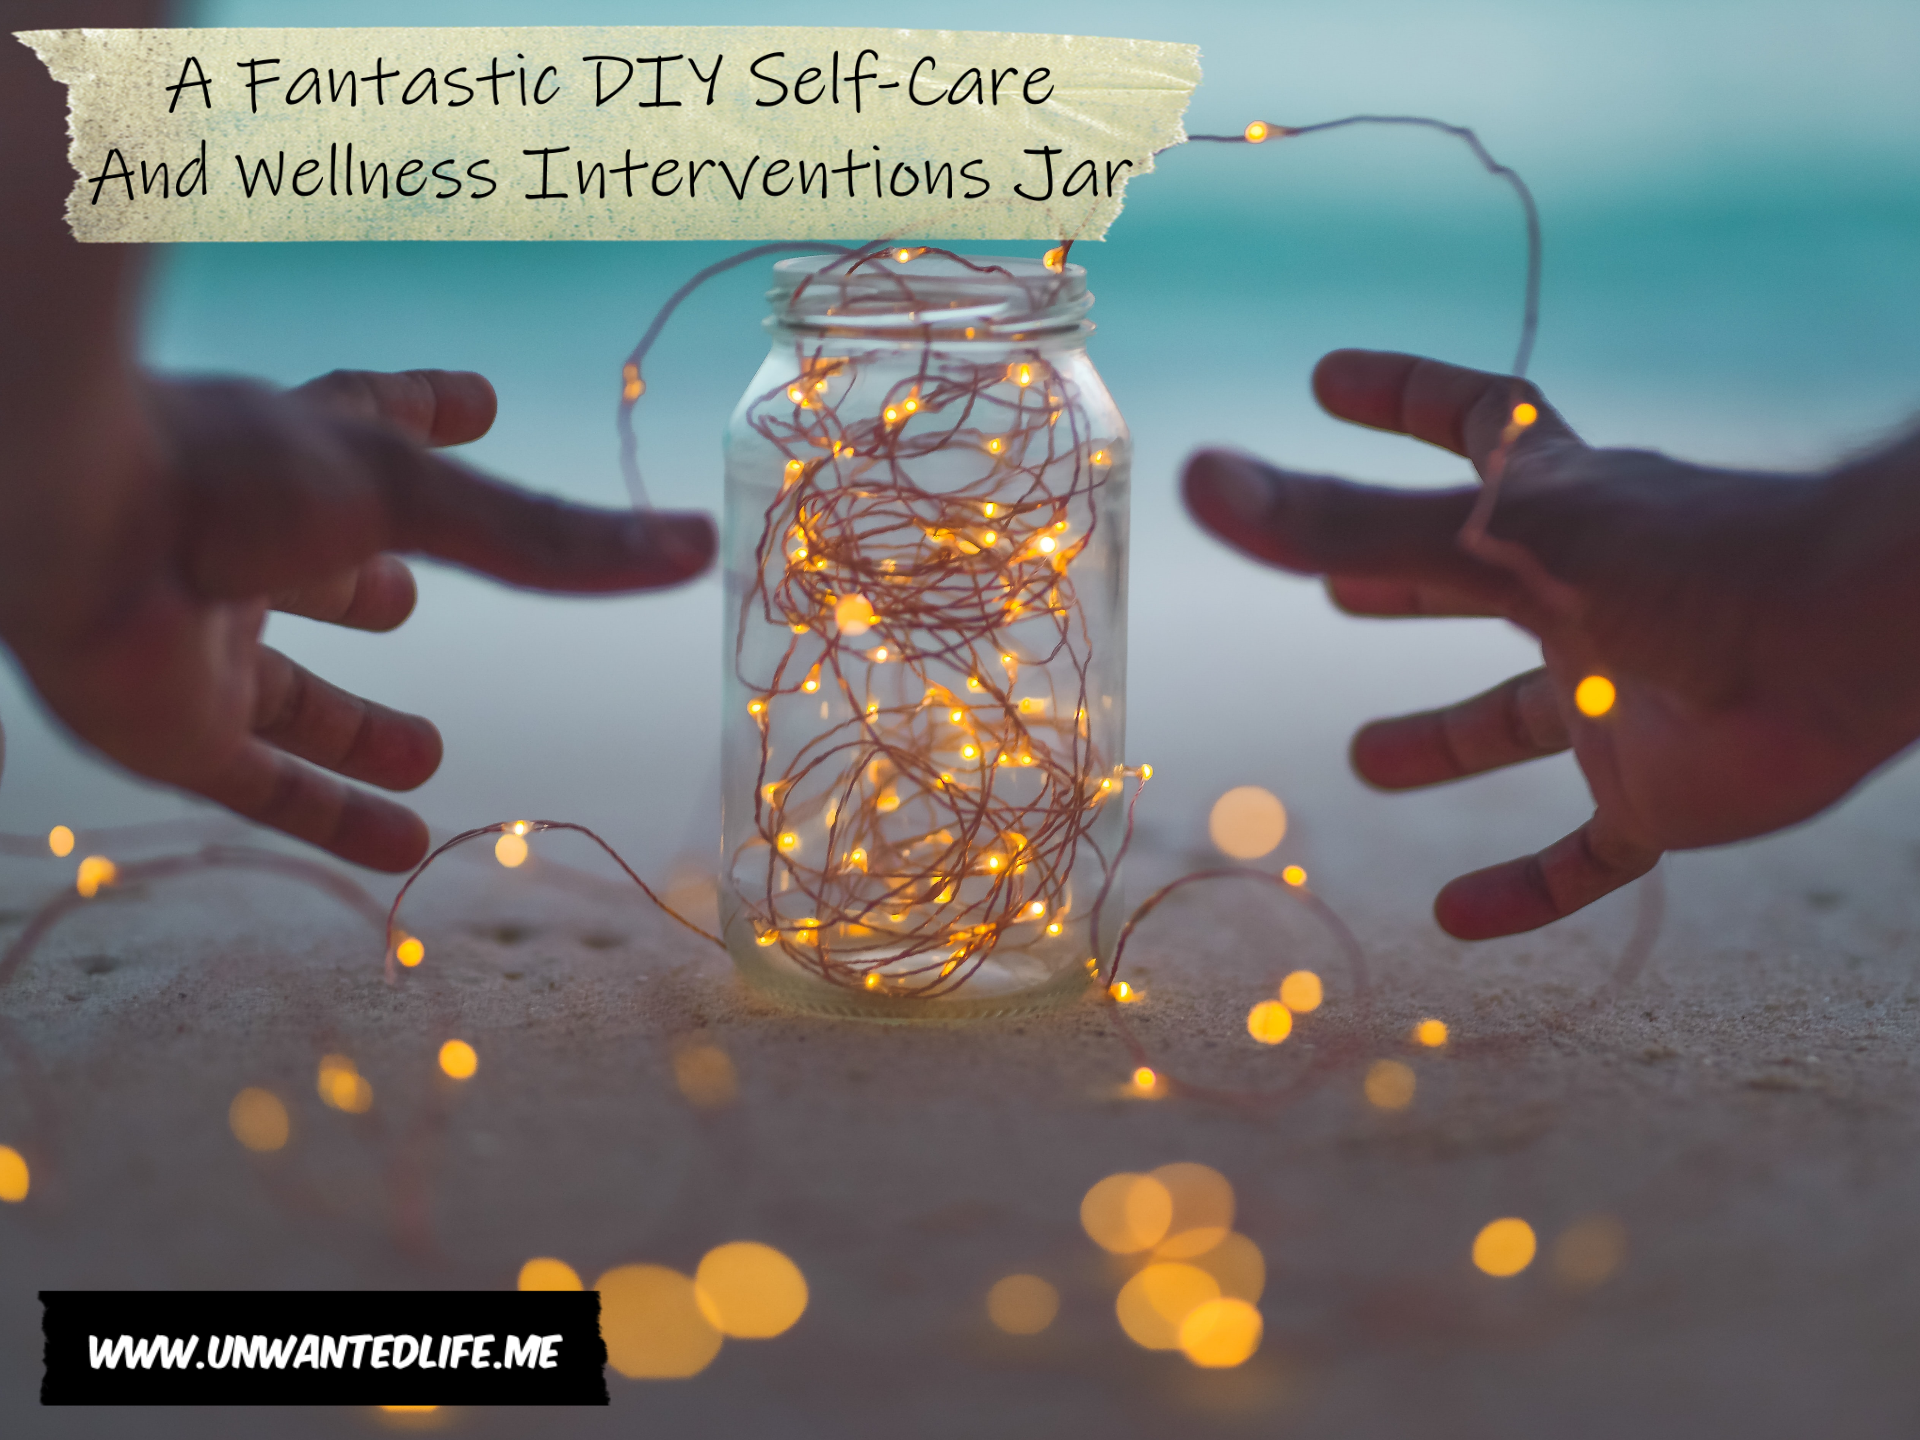 A Fantastic DIY Self-Care And Wellness Interventions Jar | Mental Health and Wellbeing | Unwanted Life